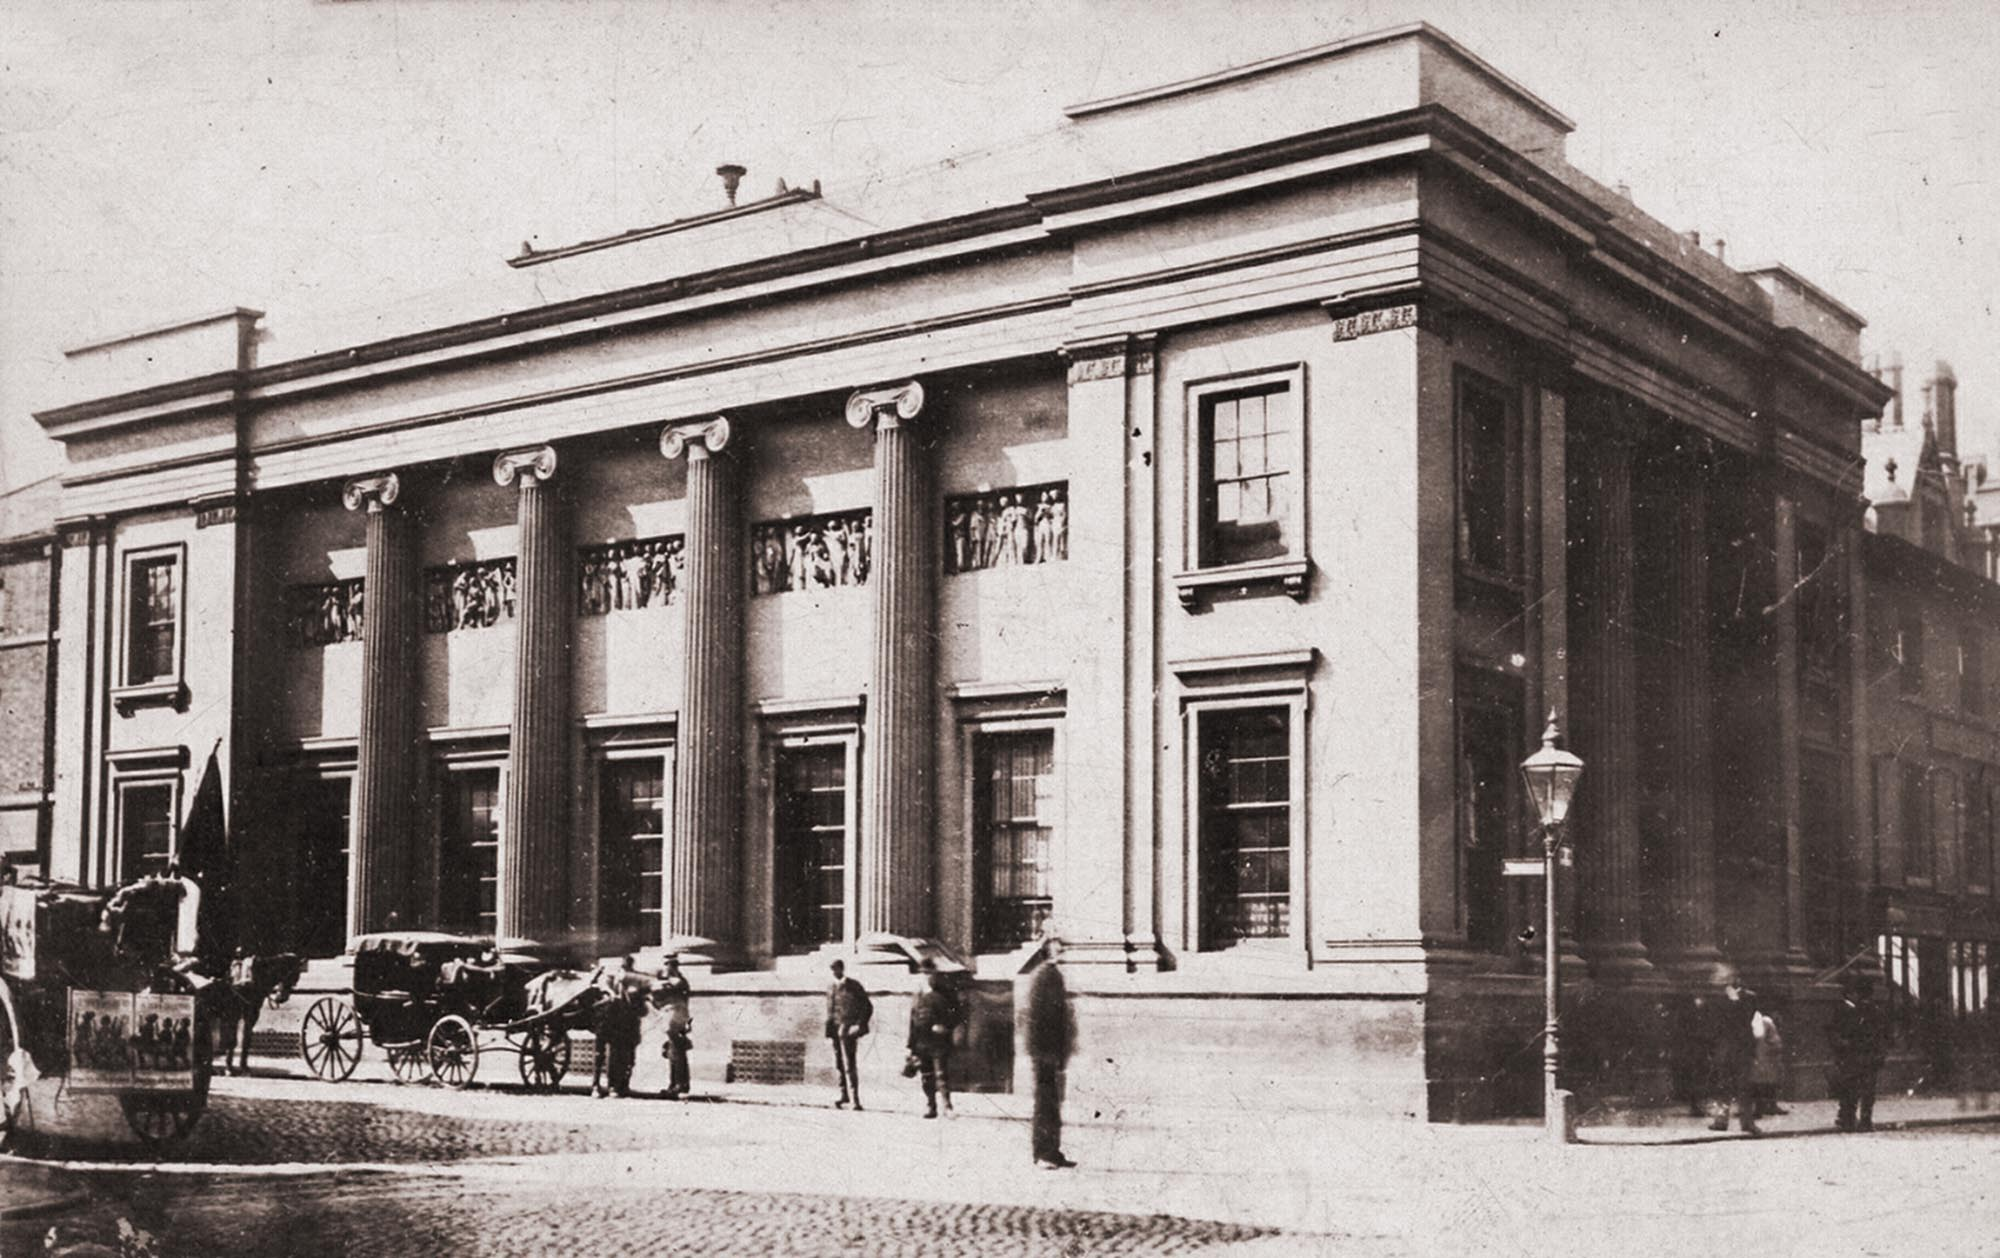 The first general newsroom built in 1837, demolished in the late 1890s - Leicestershire Record Office